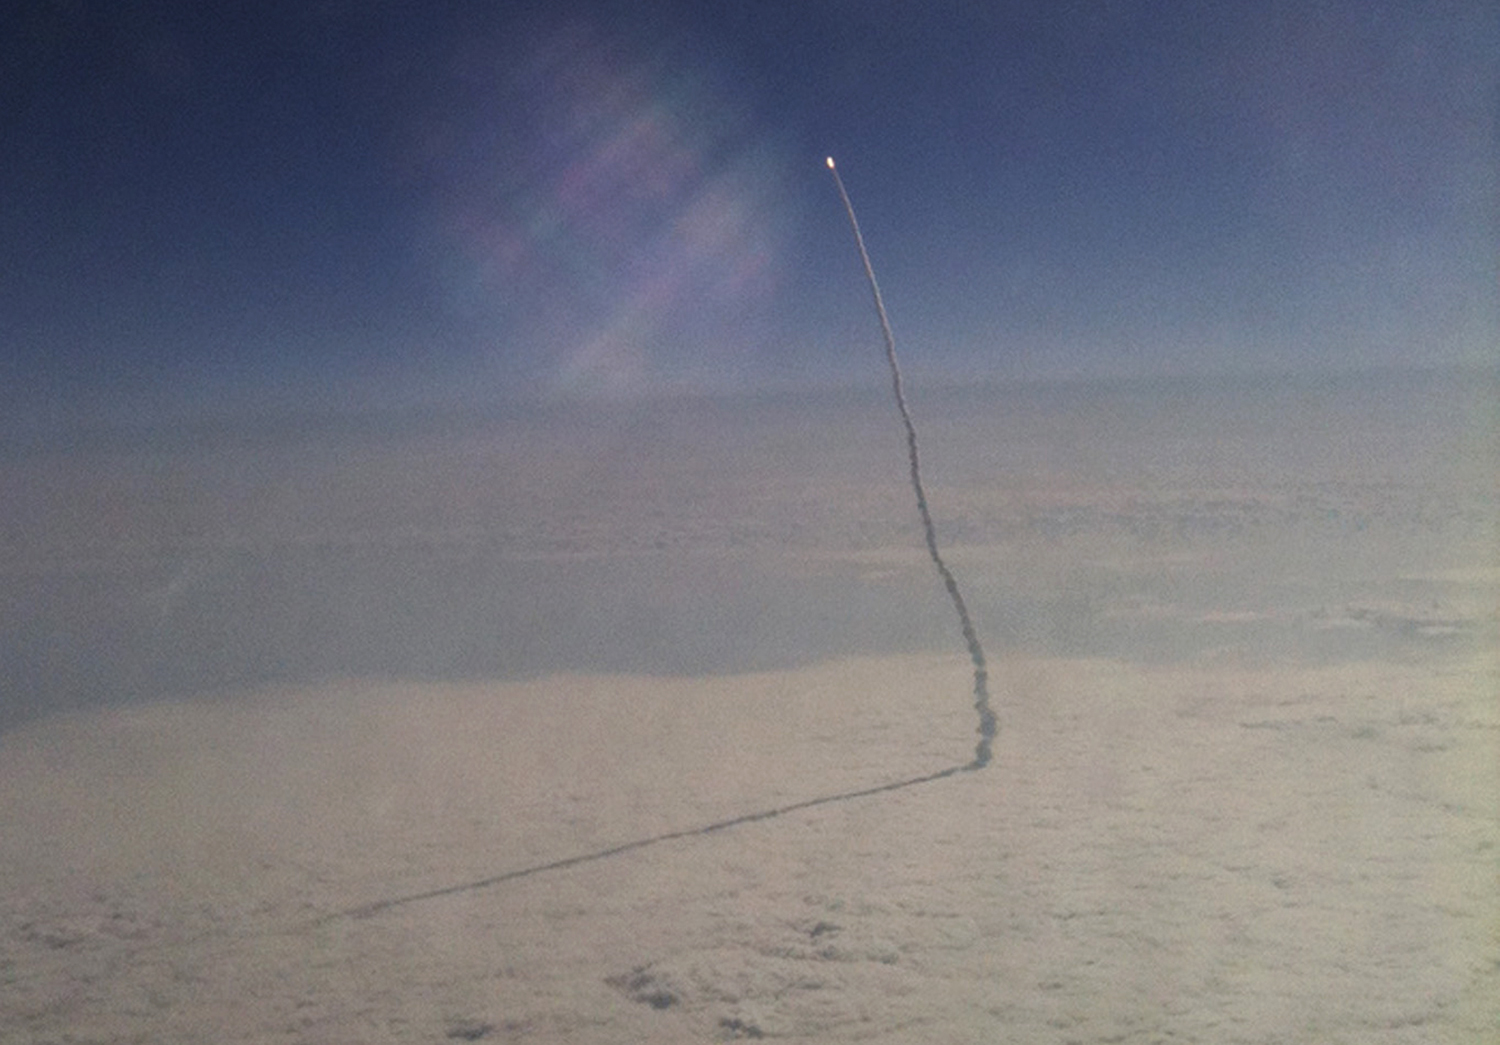 The photo [of space shuttle Endeavour] was an unexpected hit that I took from almost 35,000 ft. over Florida, flying from New York City to Palm Beach with—of all things my—iPhone 3GS, and tweeted it out upon landing,  says Stefanie Gordon.  I didn't realize the impact of the photo or the rounds it was making in social media until a few hours later when I looked at my Twitter mentions and all the personal messages I was receiving on Facebook. Next thing I knew, I was being interviewed by media outlets from all over the world, and my photo was on almost every evening news program. I am still in search for that perfect job that many thought would be offered to me after the photo caught fire.